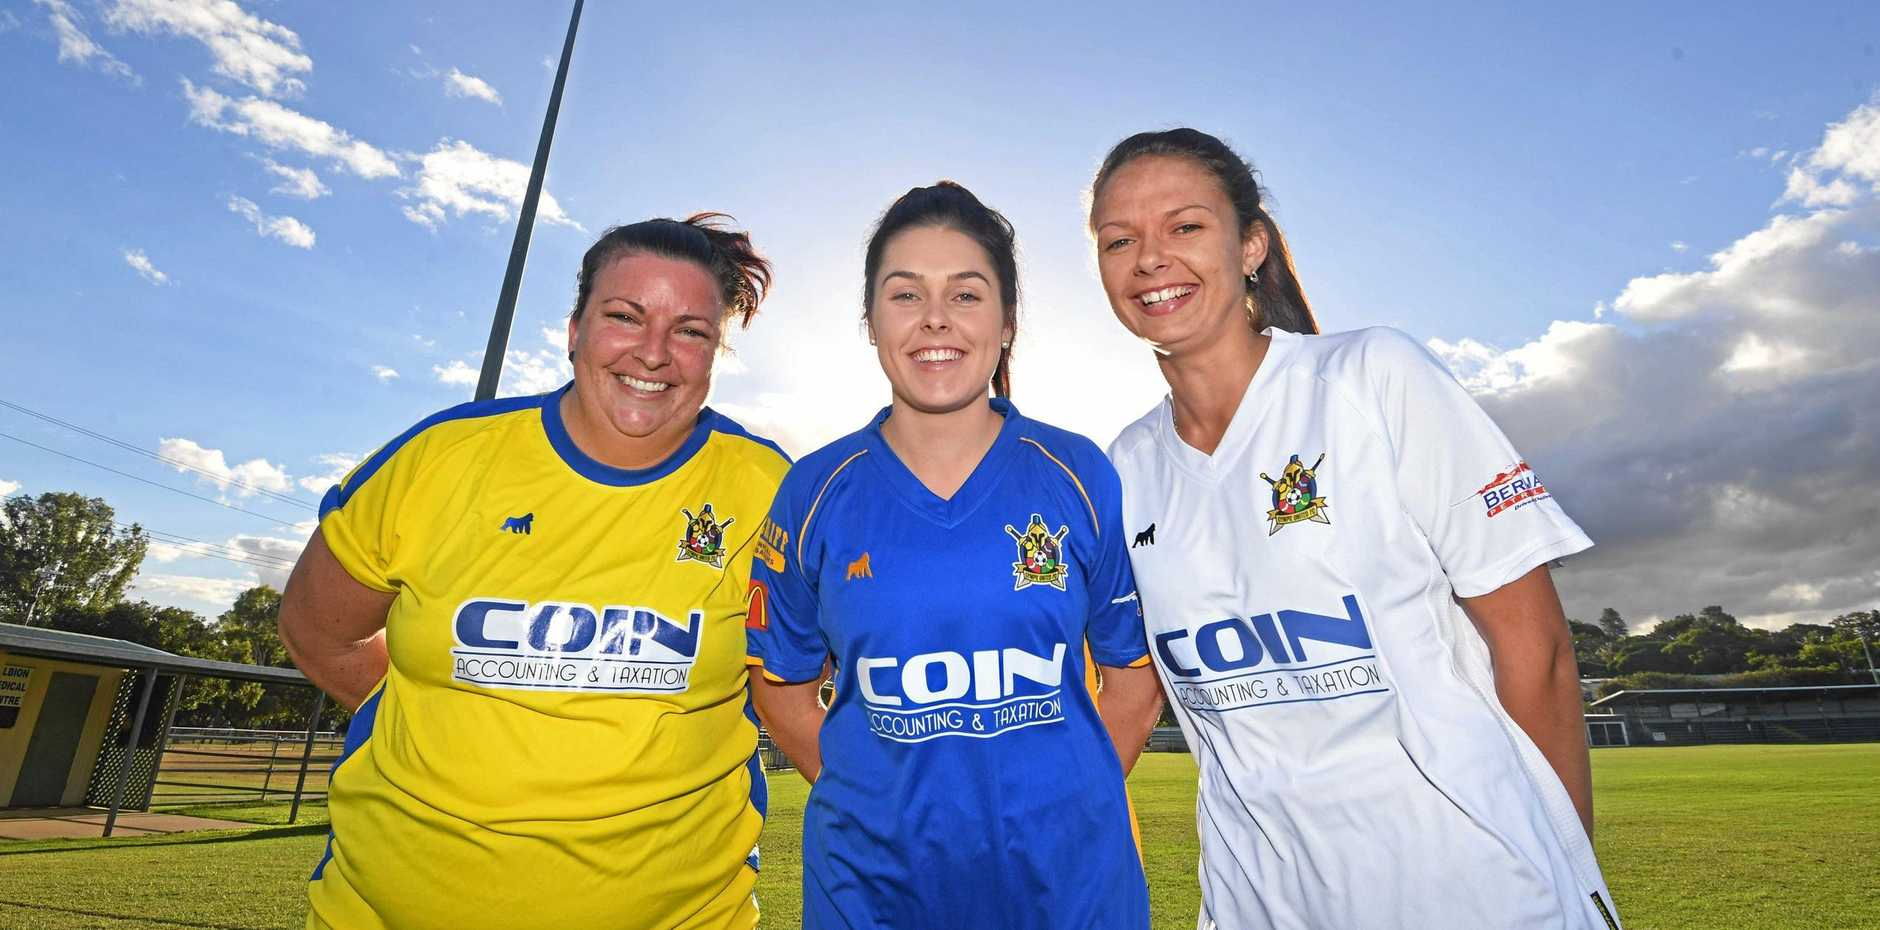 EXPANDED: Gympie United Gladiators players Vanessa Weaver, Chloe Vidler and Sammie Sutton show off the new Gympie United Gladiators women's strips for their inaugural season this year.